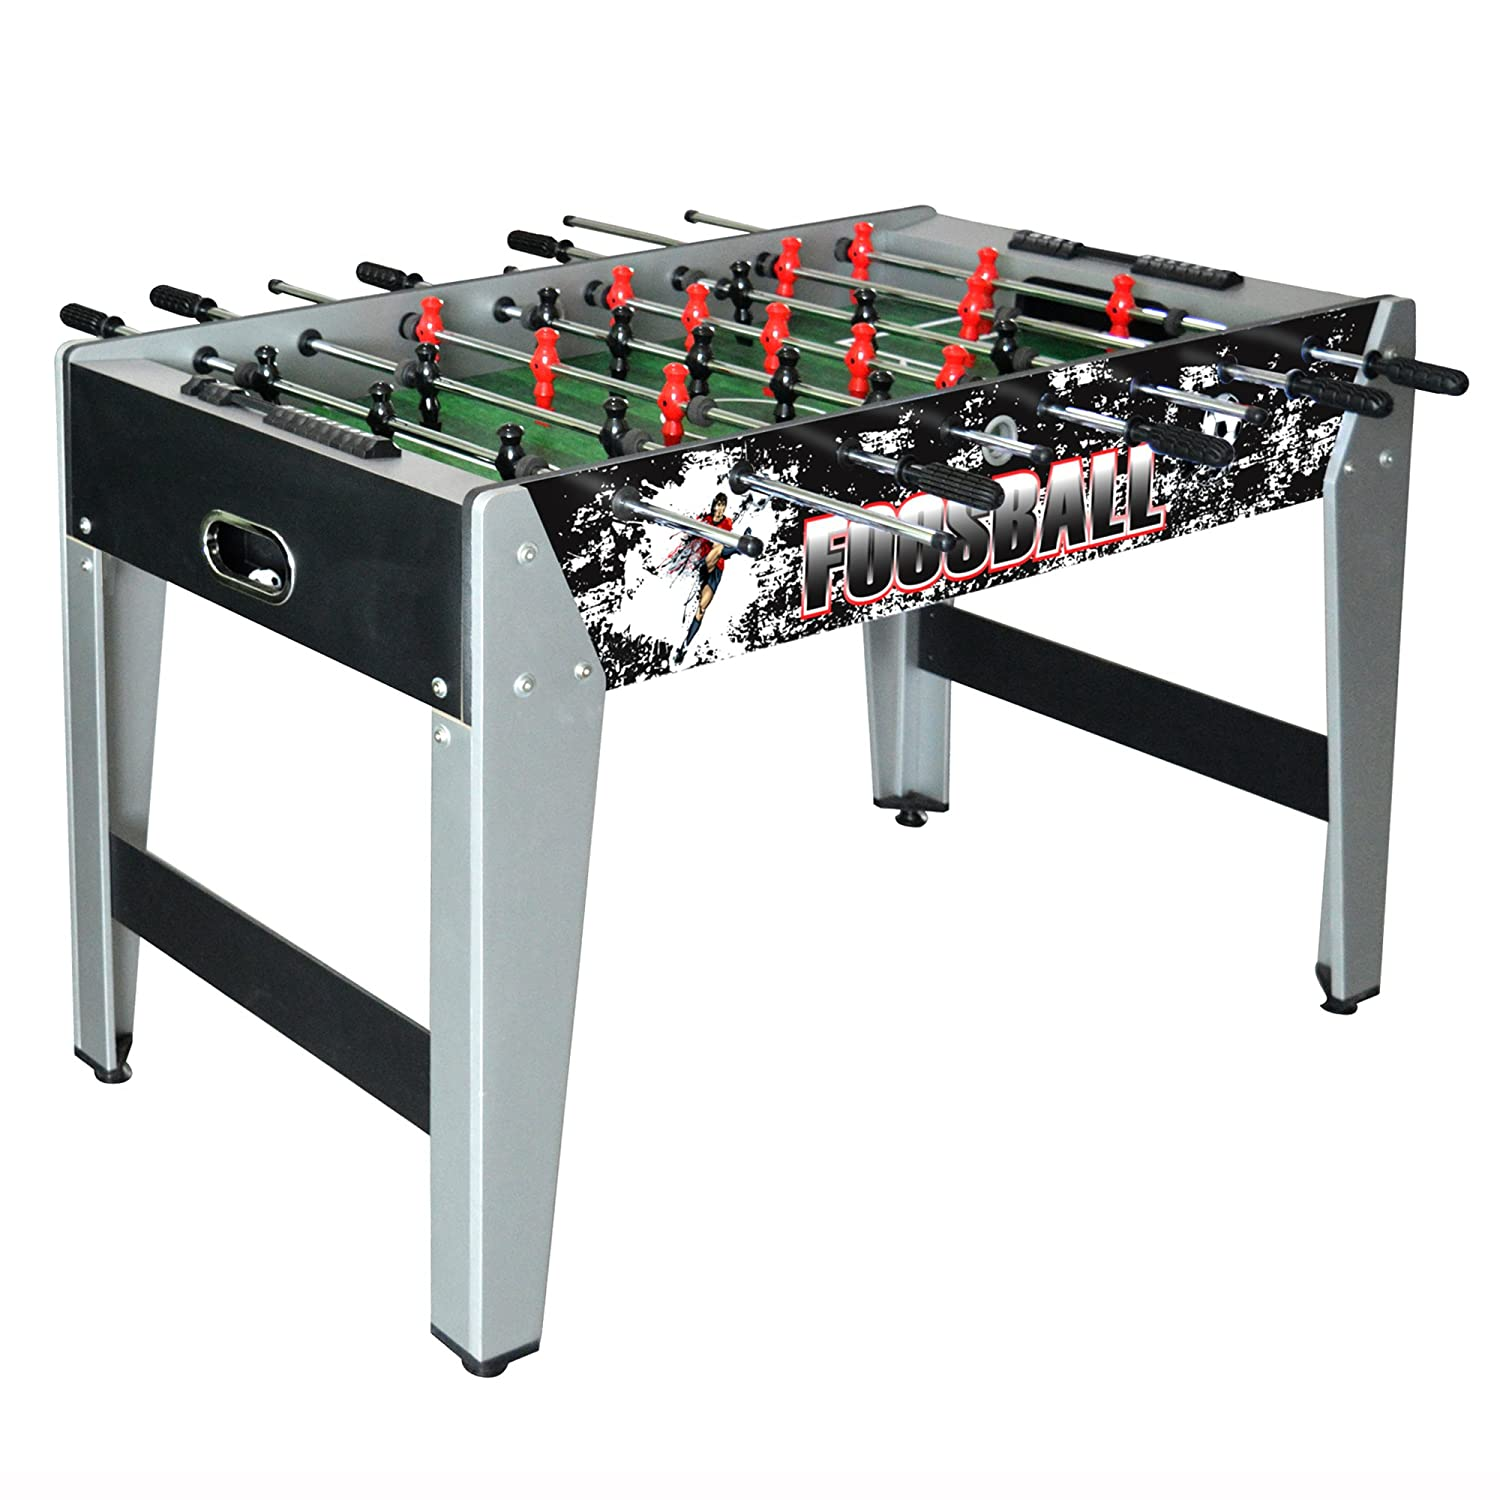 Hathaway Avalanche Foosball Table Soccer Game Ergonomic Handles Kids Adults, 48-in Black/Gray BG1133F